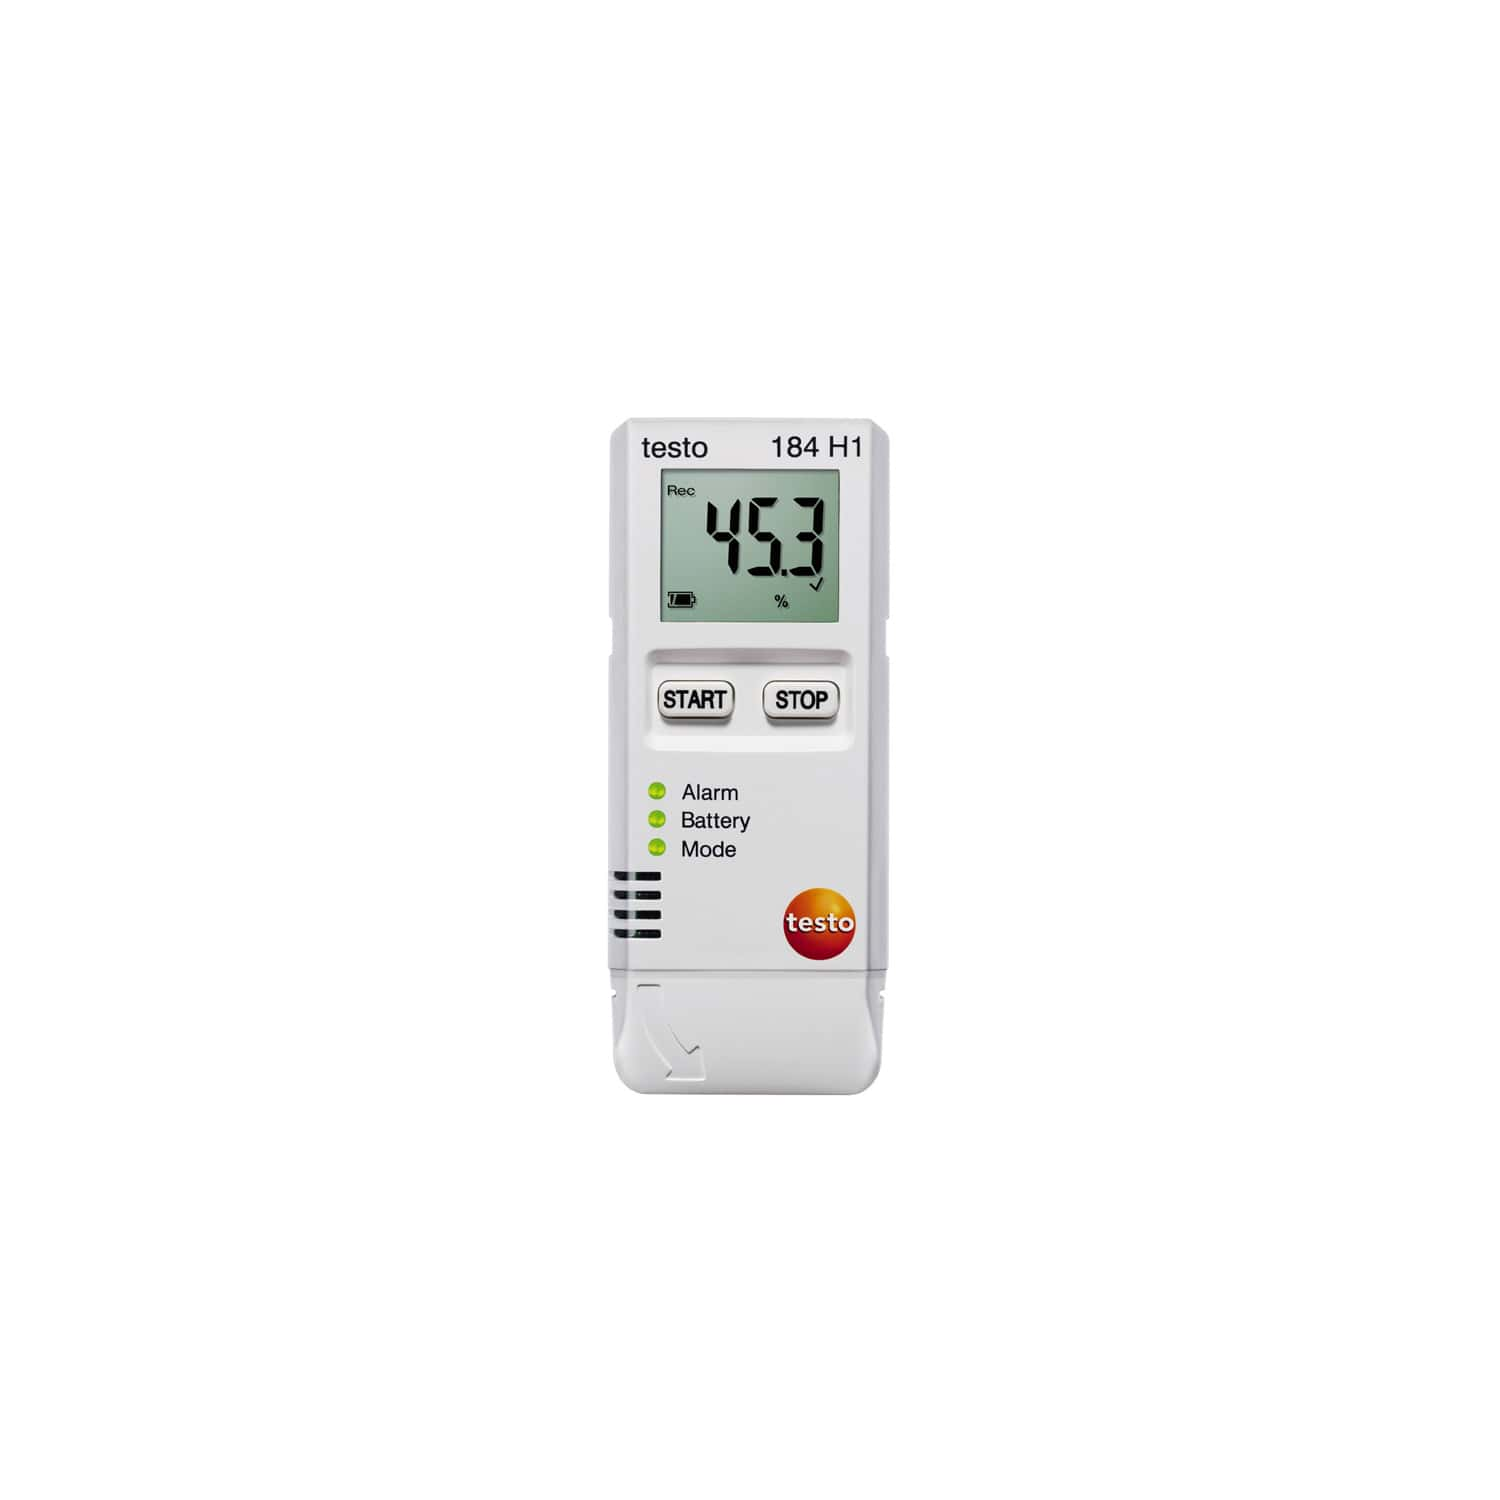 testo 184 H1 - Air humidity and temperature data logger for transport monitorin